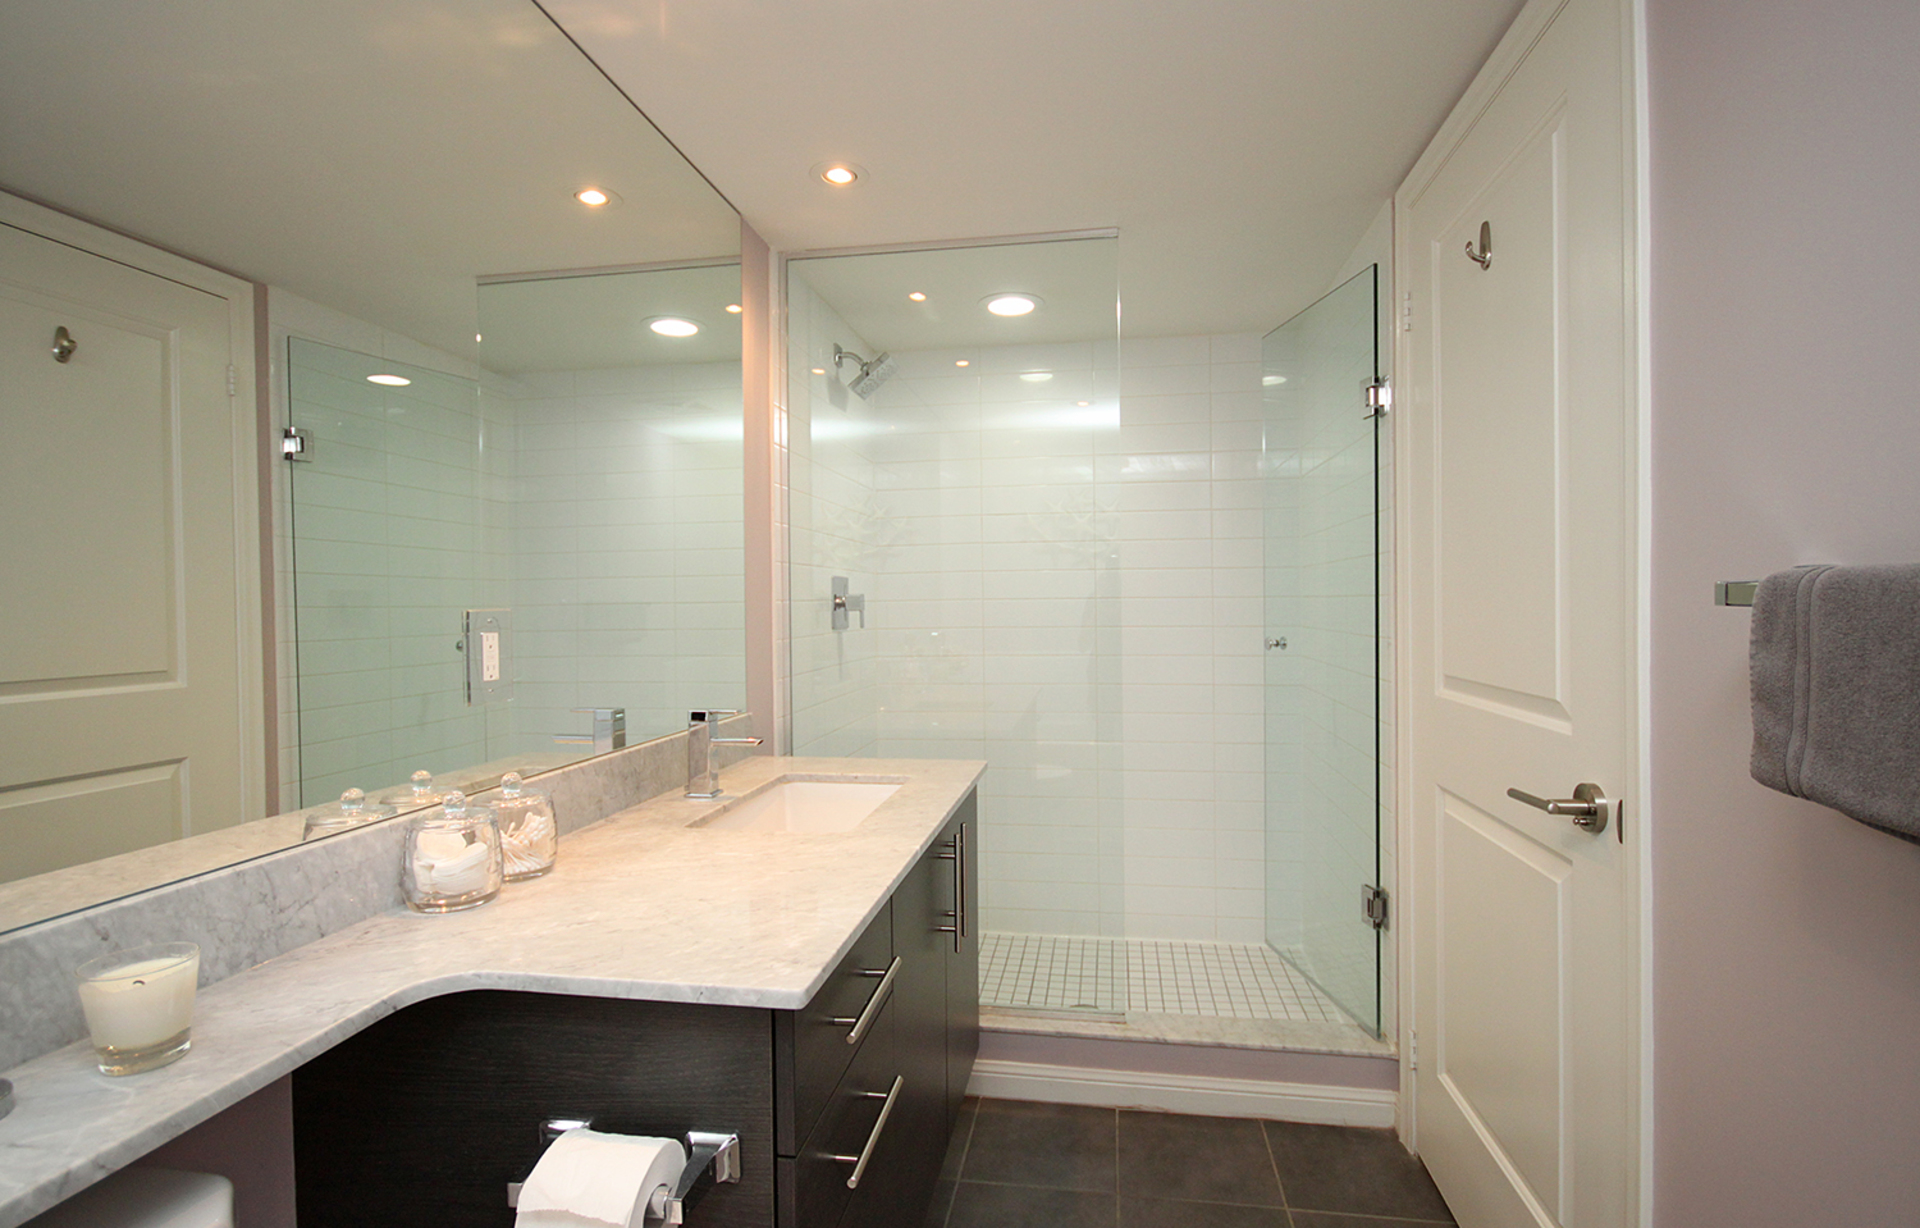 4 Piece Ensuite Bathroom at 421 - 75 East Liberty Street, Niagara, Toronto